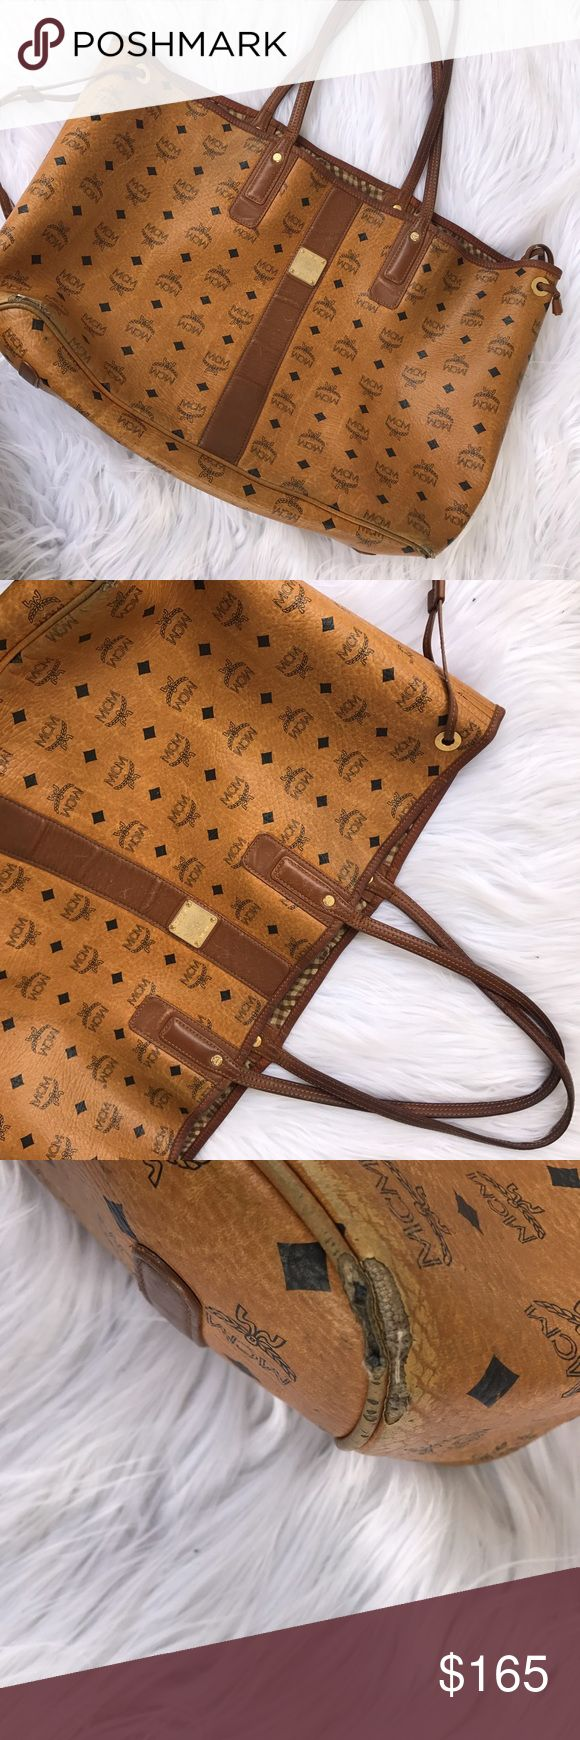 MCM LEATHER GIANT REVERSIBLE TOTE BAG PURSE Giant MCM bag that has had some good wear as shown :) reason for price but nonetheless 100% authentic MCM BAG MCM Bags